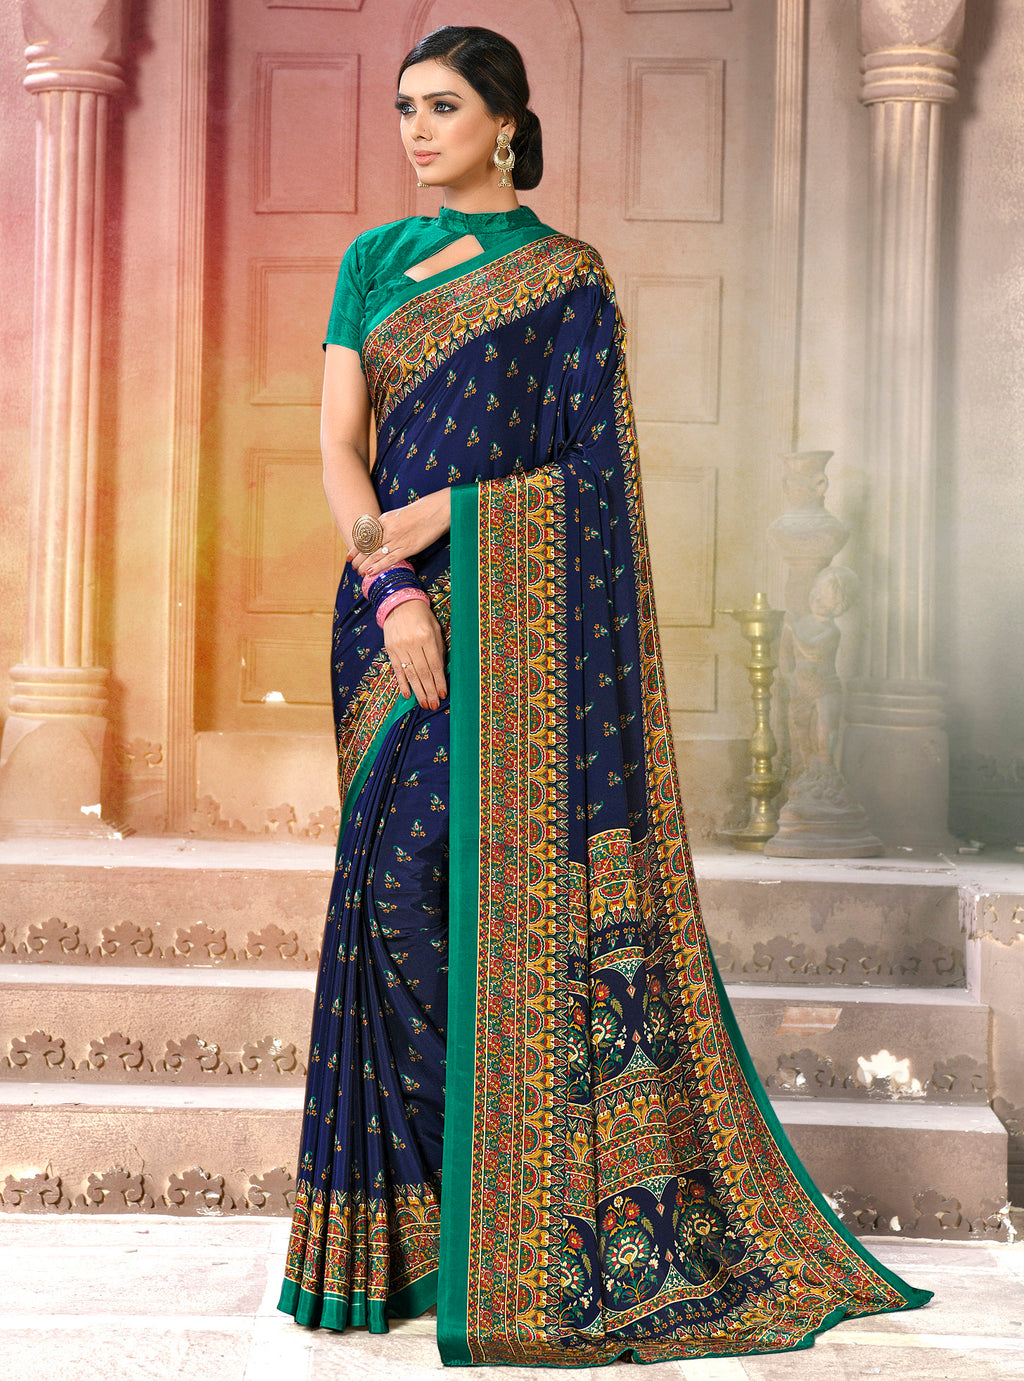 Navy Blue Color Crepe Soft & Light Weight Printed Sarees NYF-7280